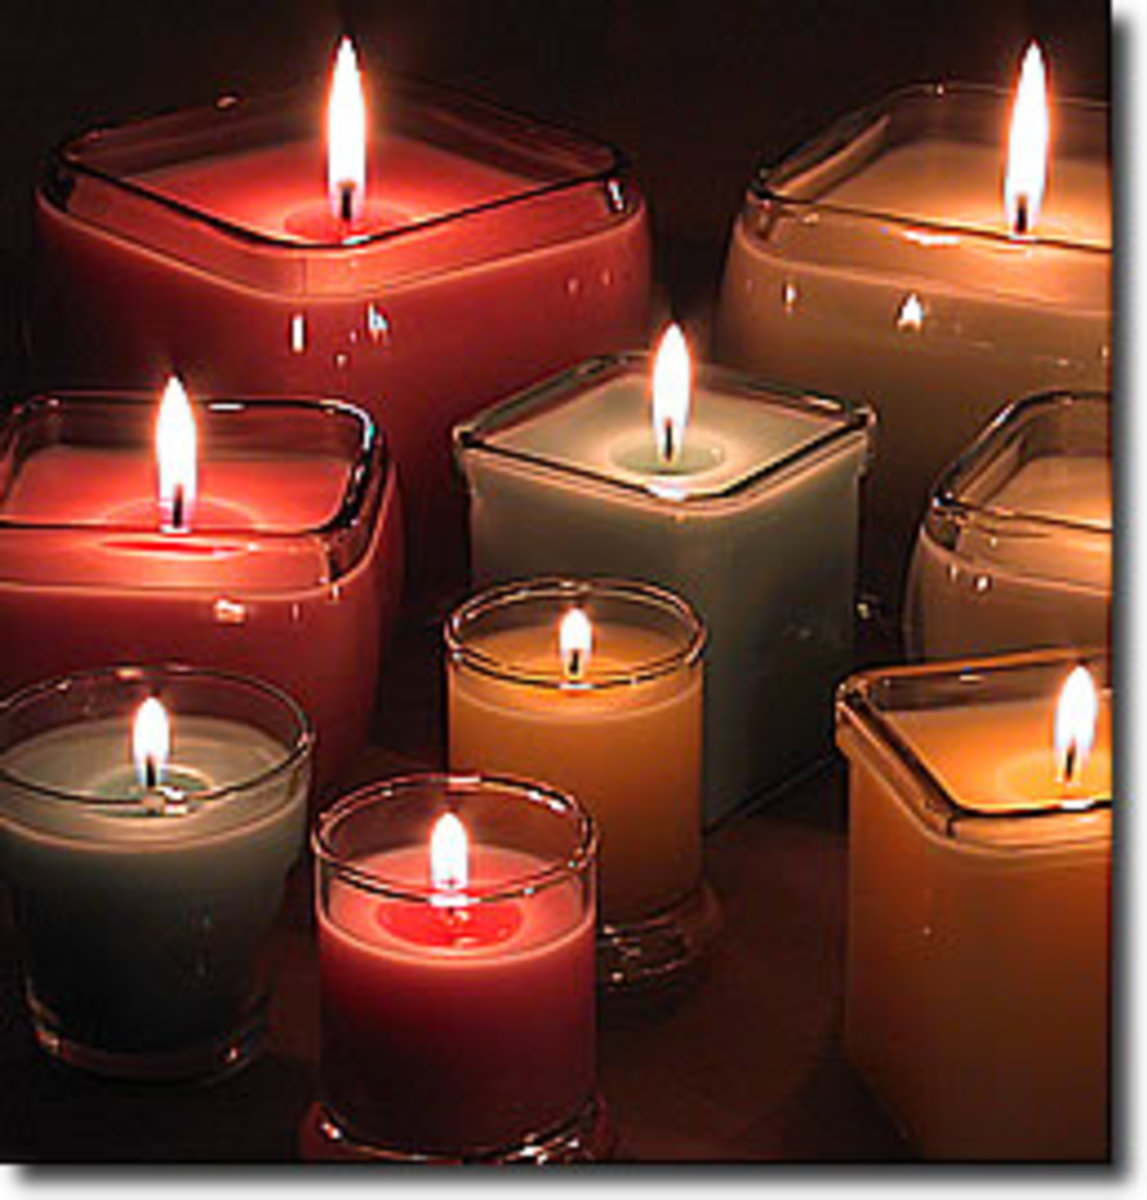 Candles make the passion burn